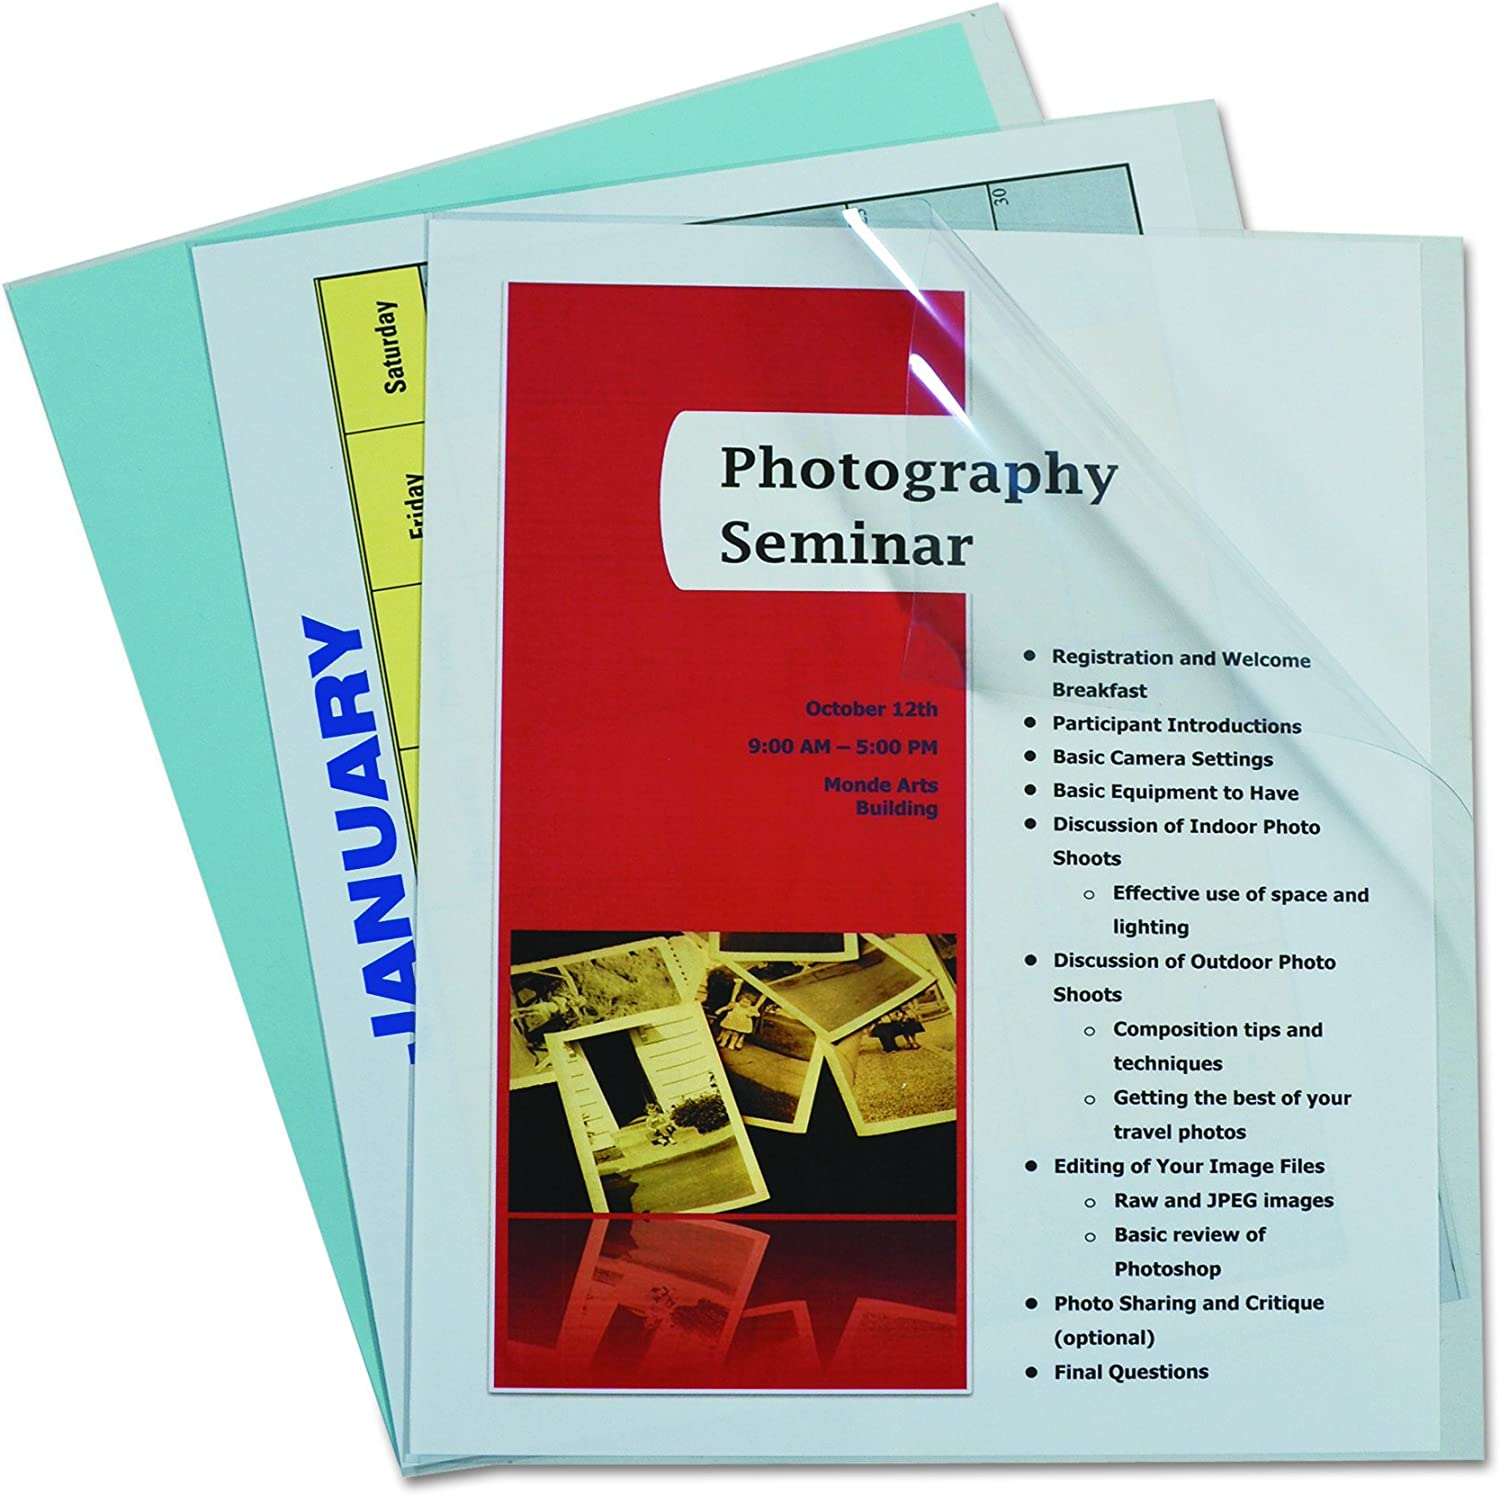 B0006ZIISU C-Line Clear Report Covers Only, Vinyl, For Use with Slide 'N Grip Binding Bars, 8.5 x 11 Inches, 100 per Box (31357) 81EJtY9aYfL